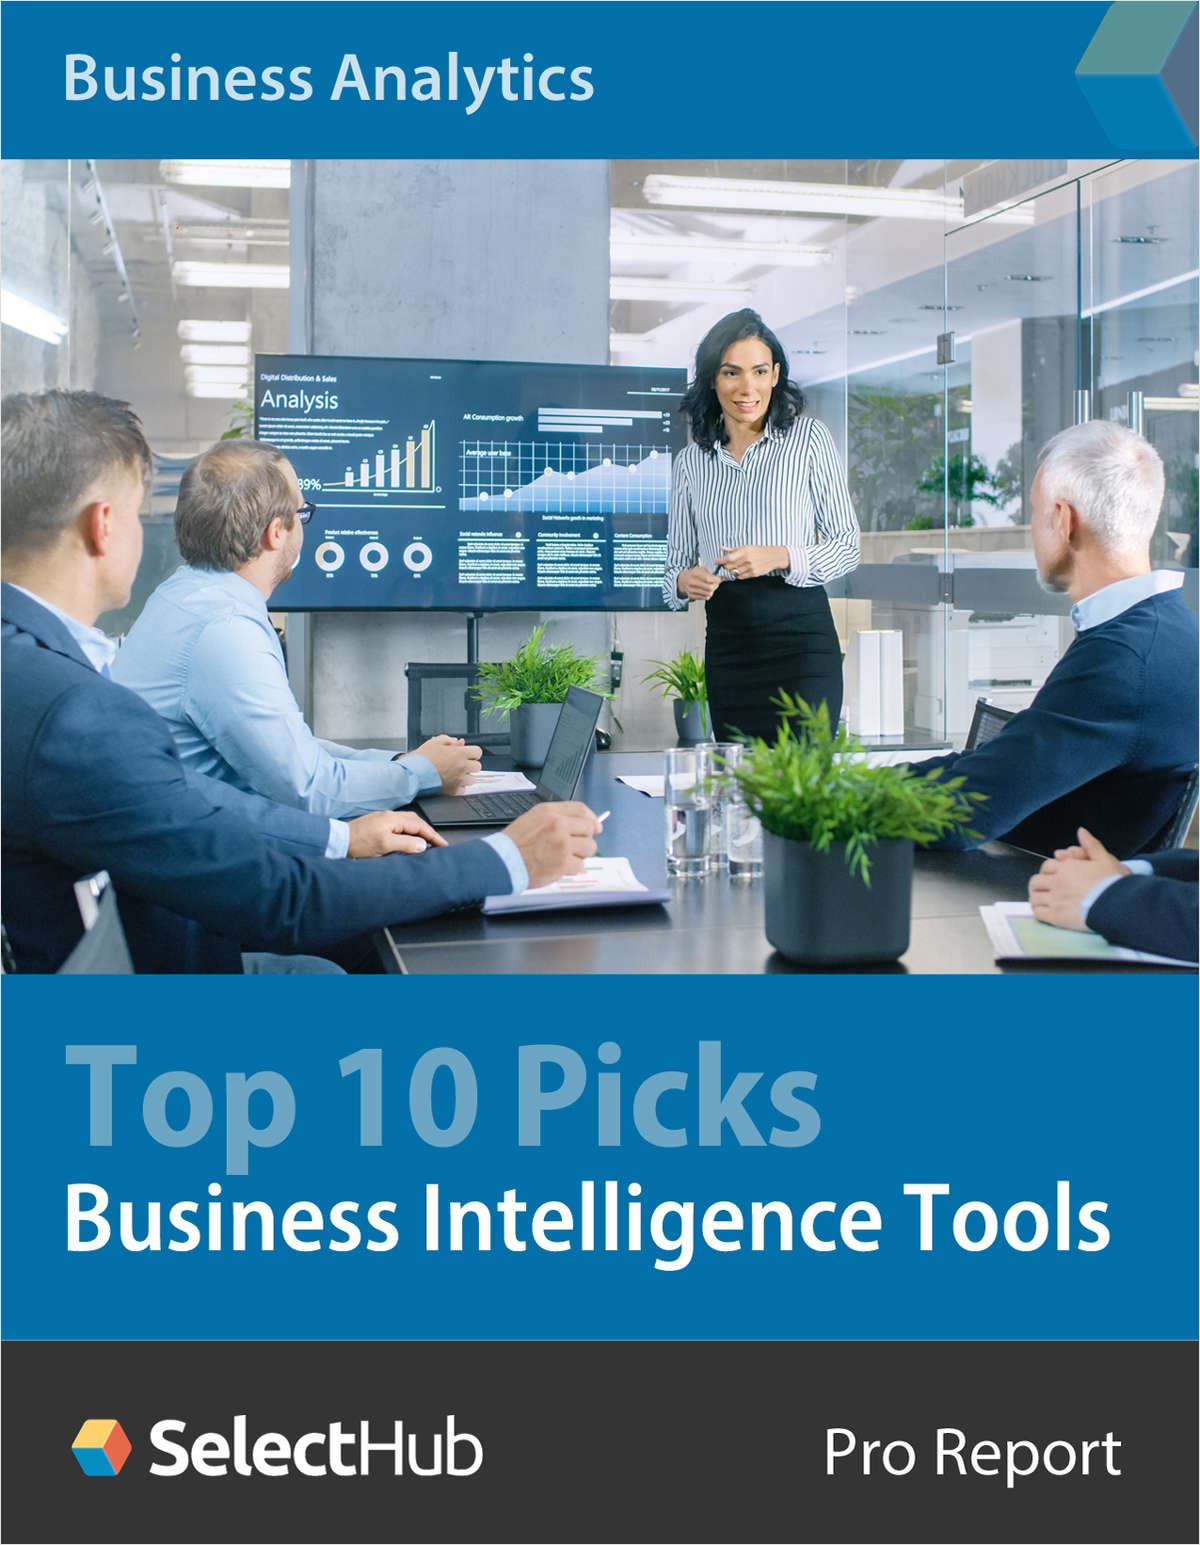 Business Intelligence Tools: Top 10 Picks in 2020